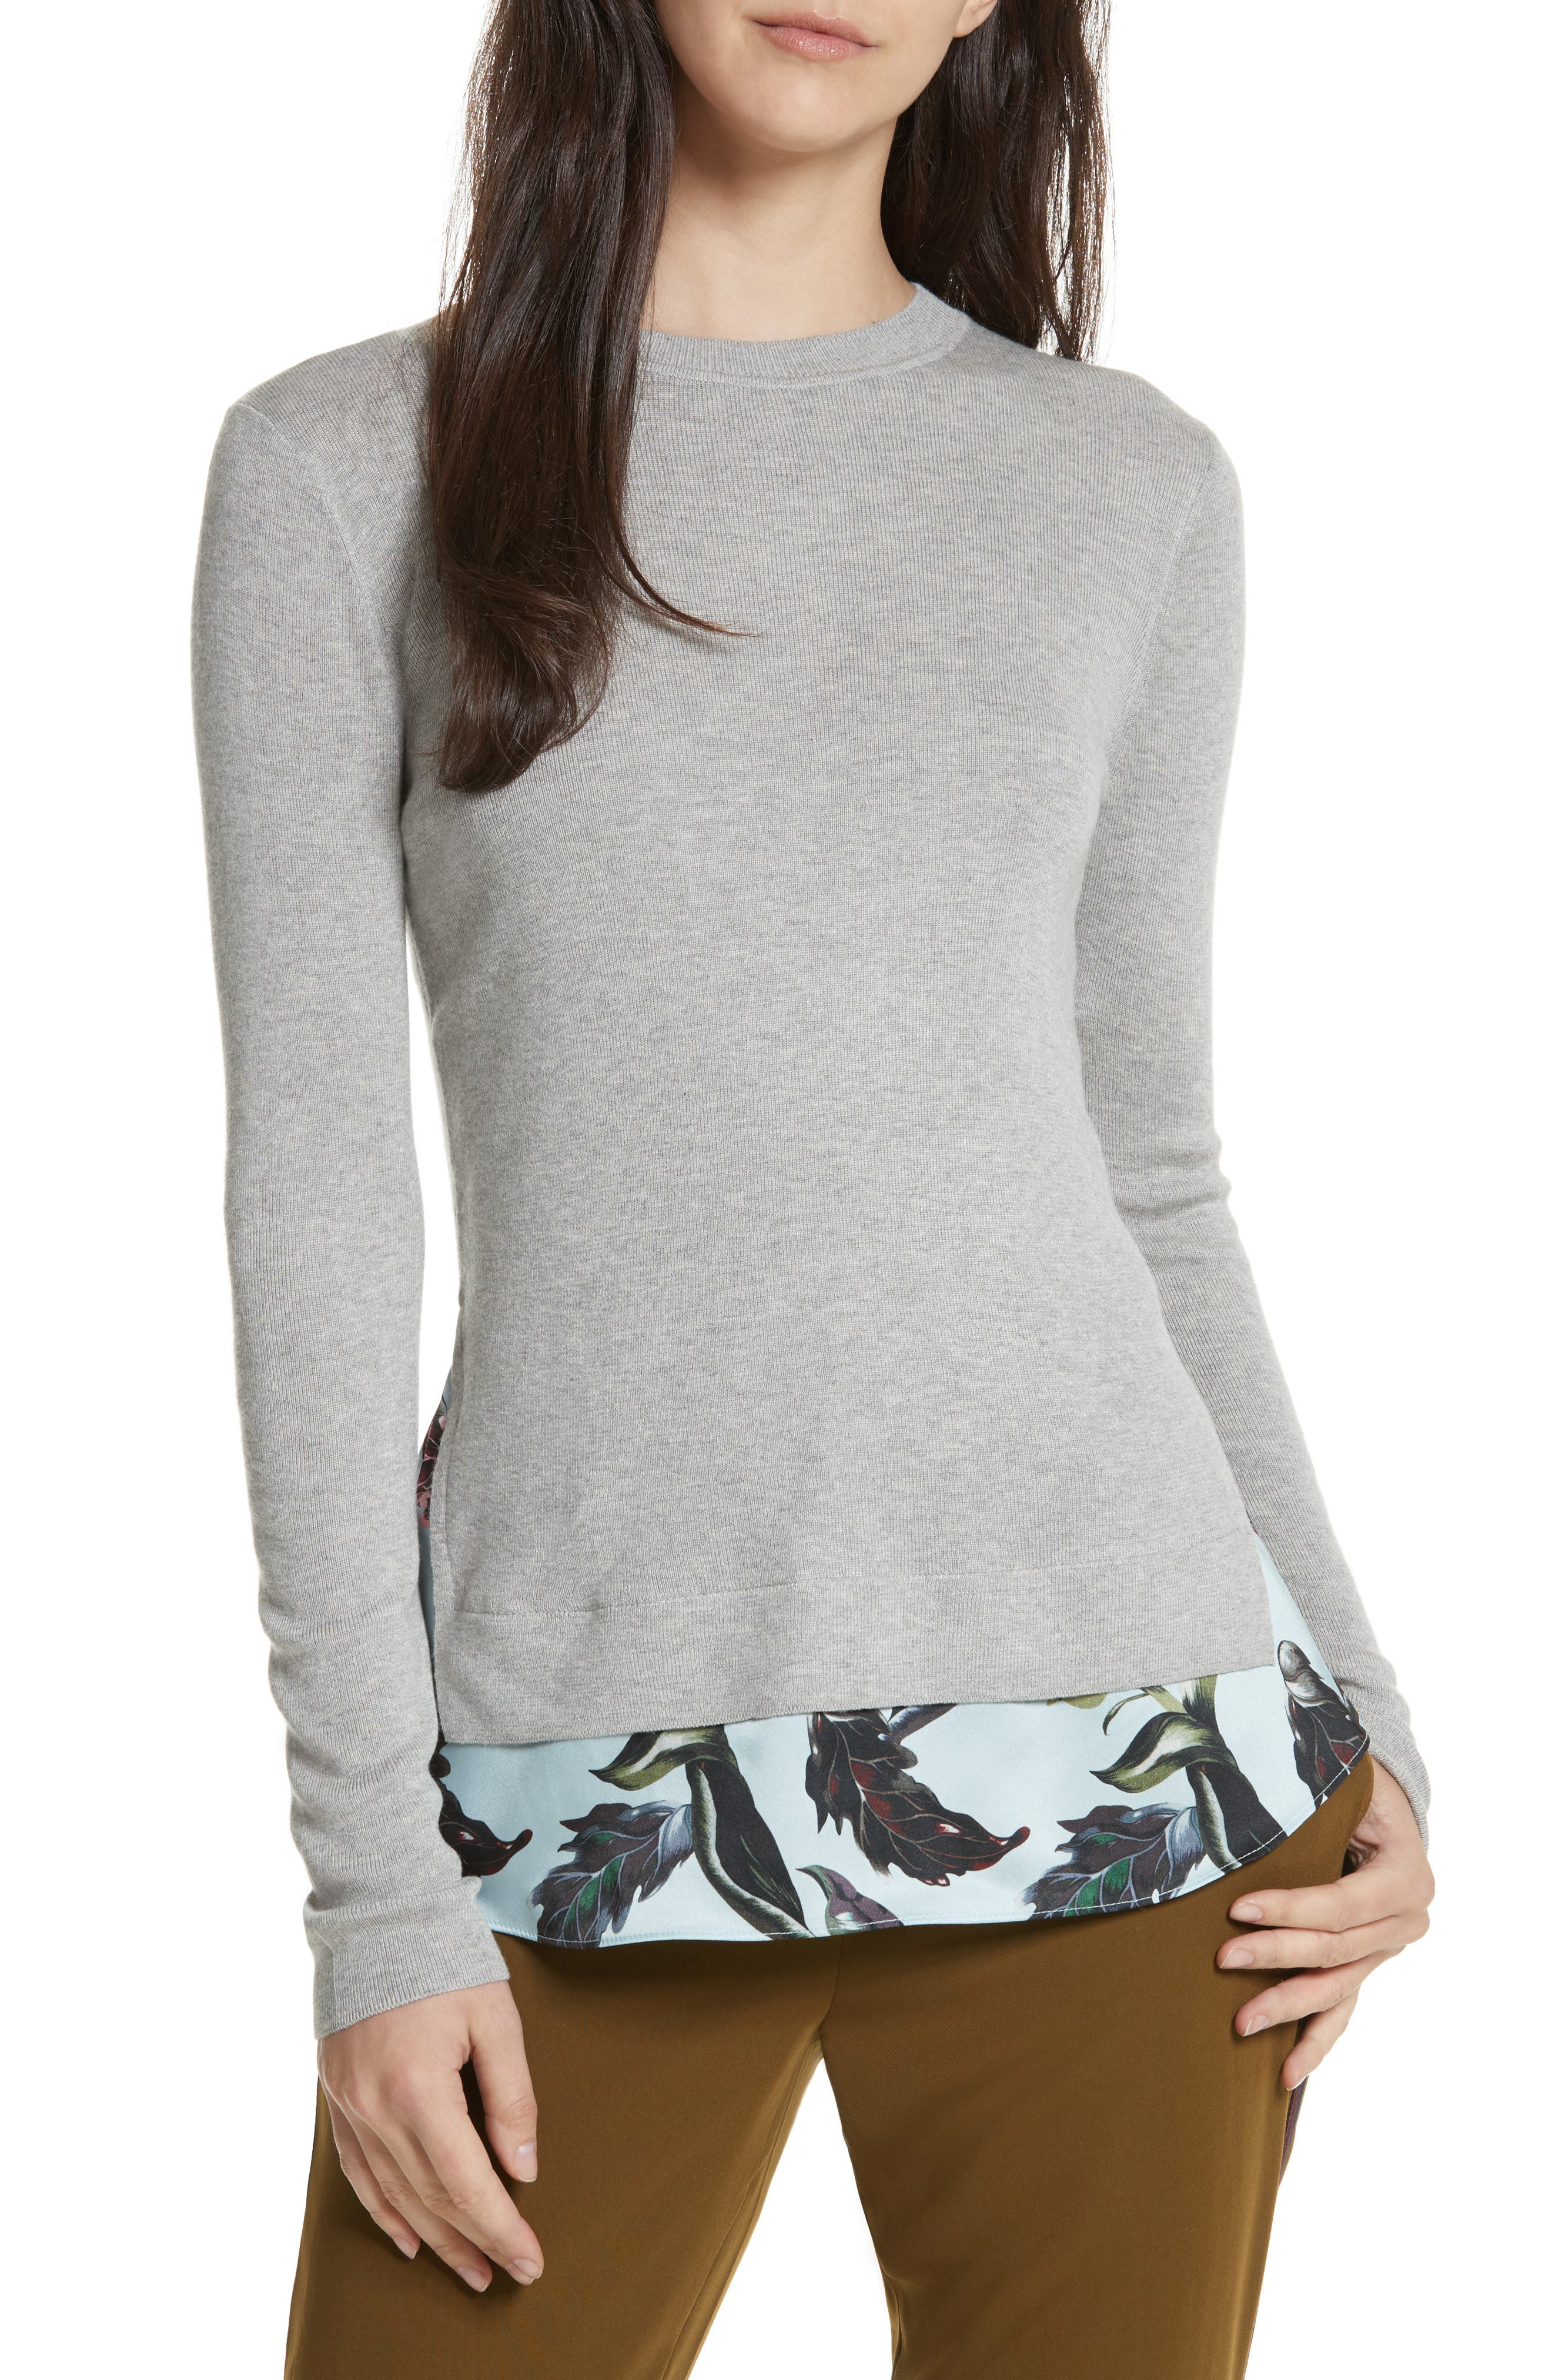 Karley Minerals Mockable Sweater,                             Main thumbnail 1, color,                             Light Grey